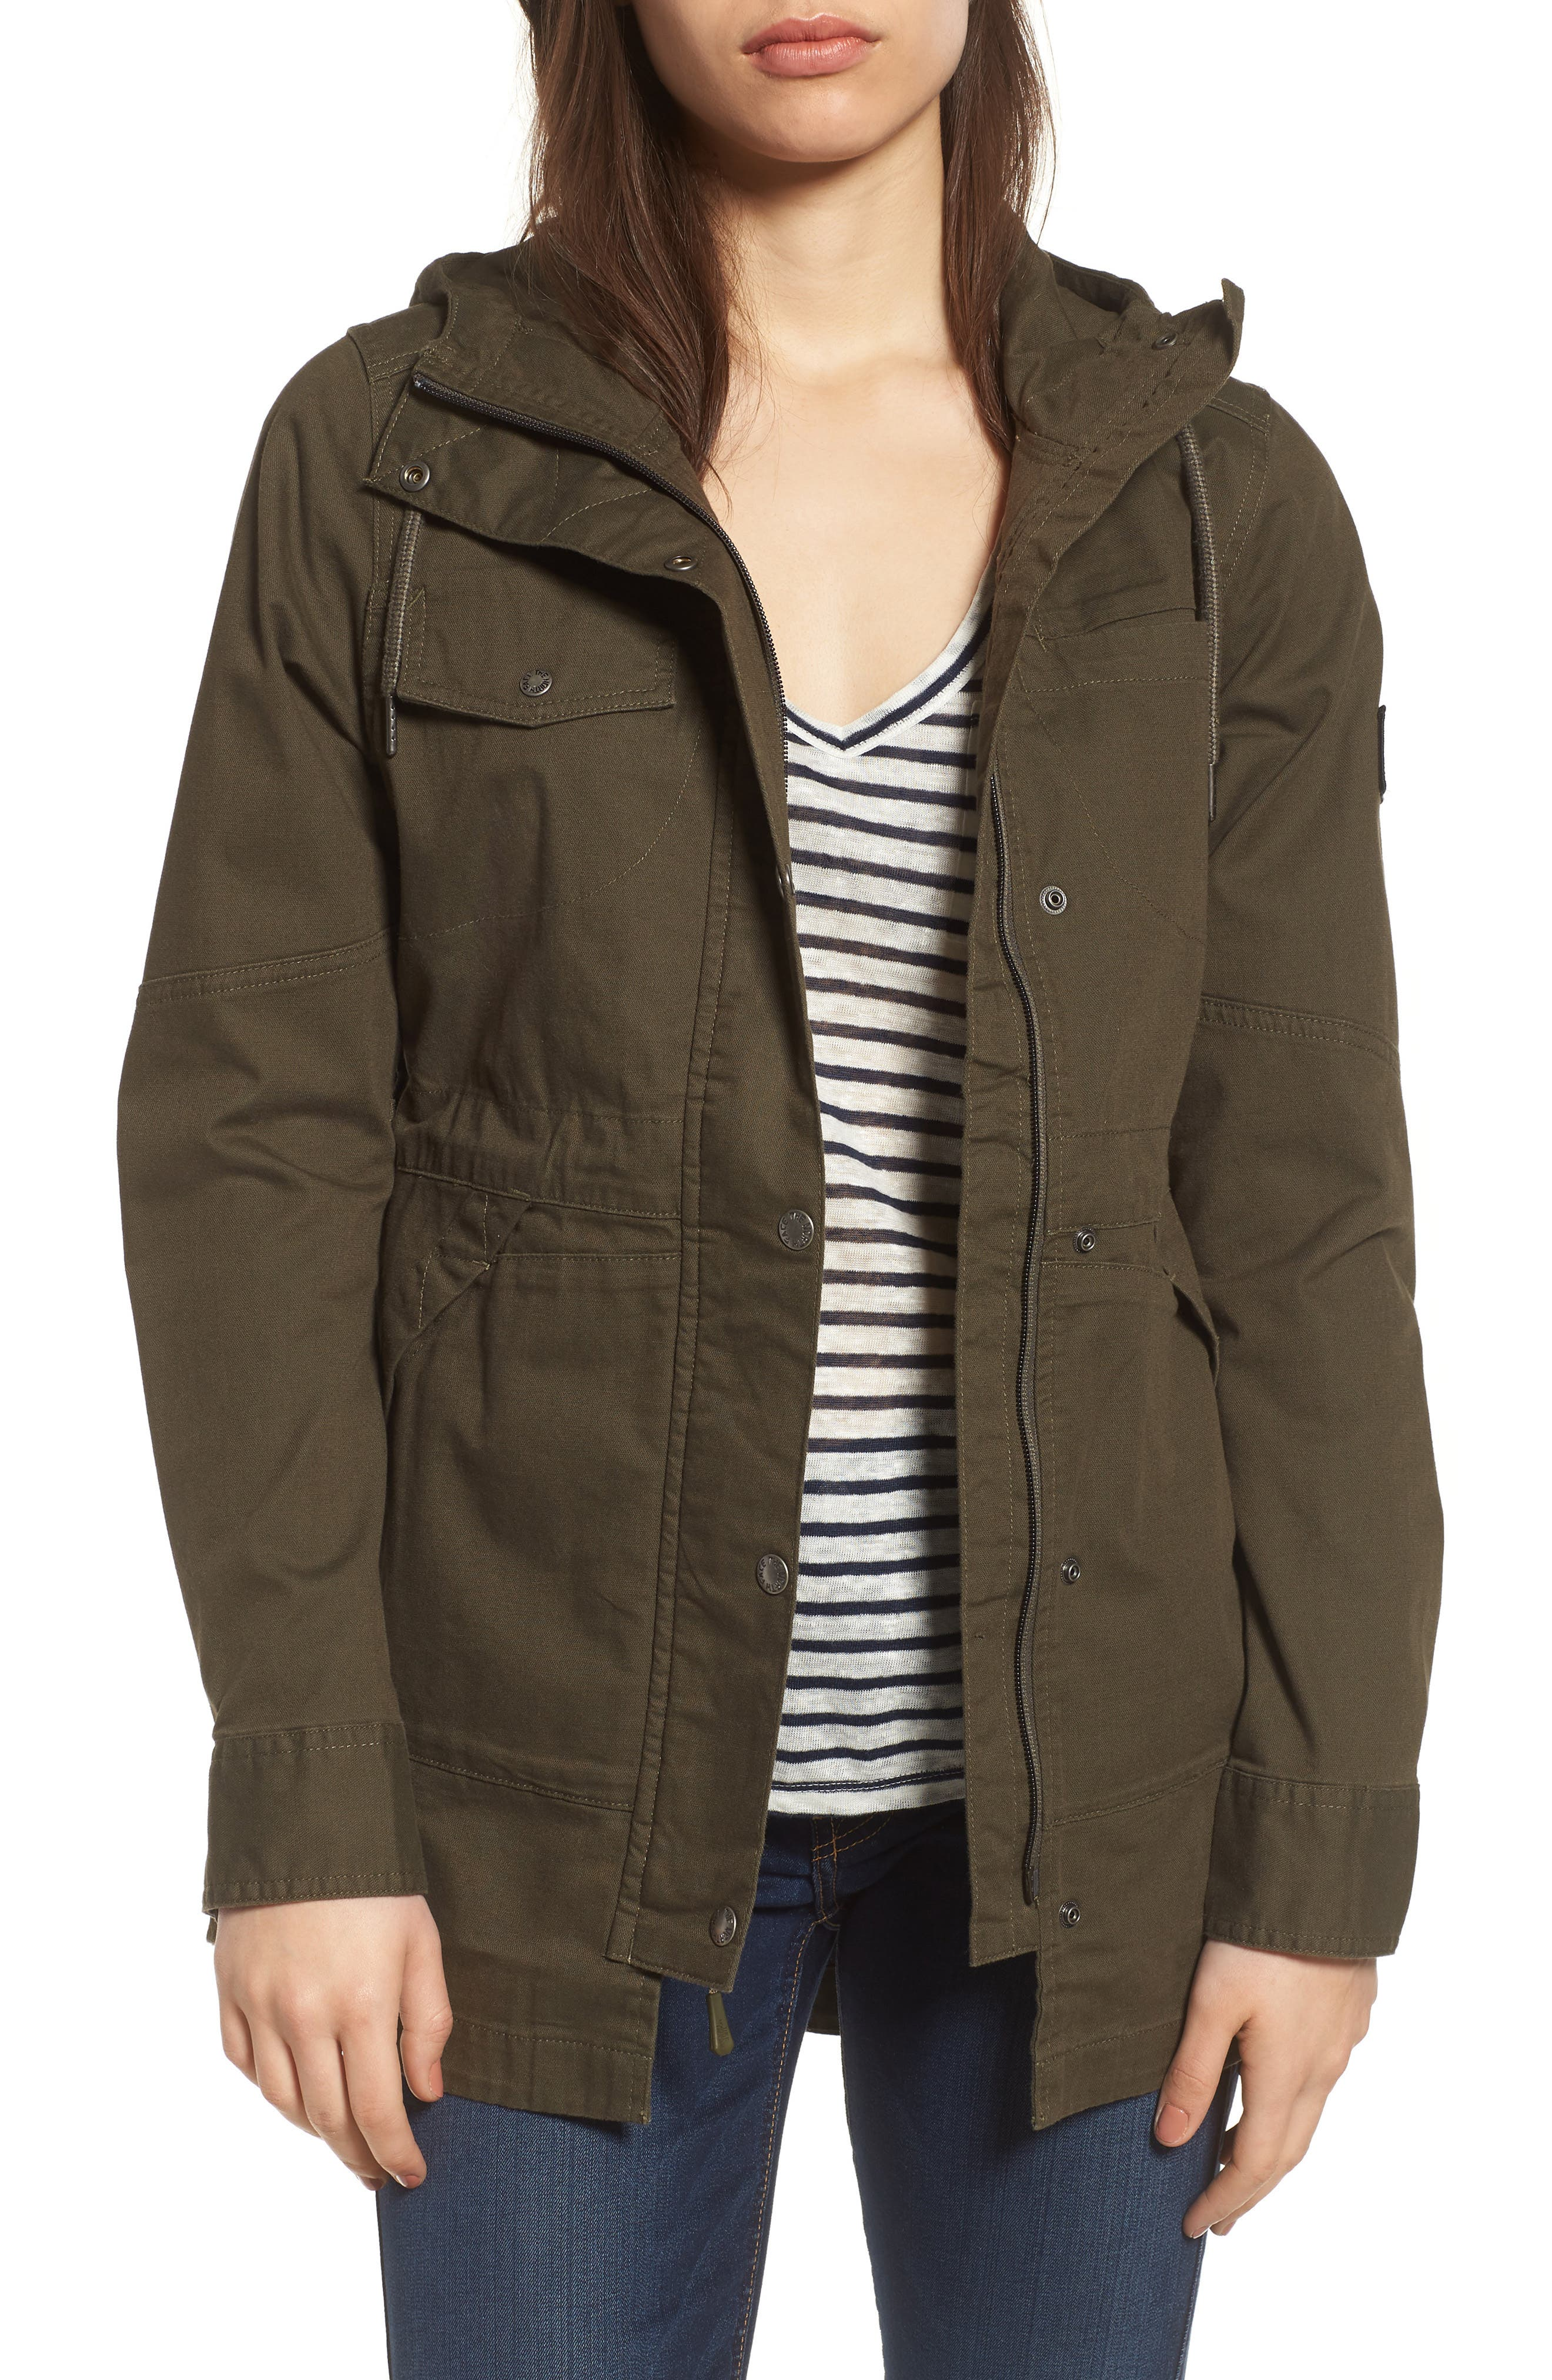 Utility Jacket,                         Main,                         color, New Taupe Green